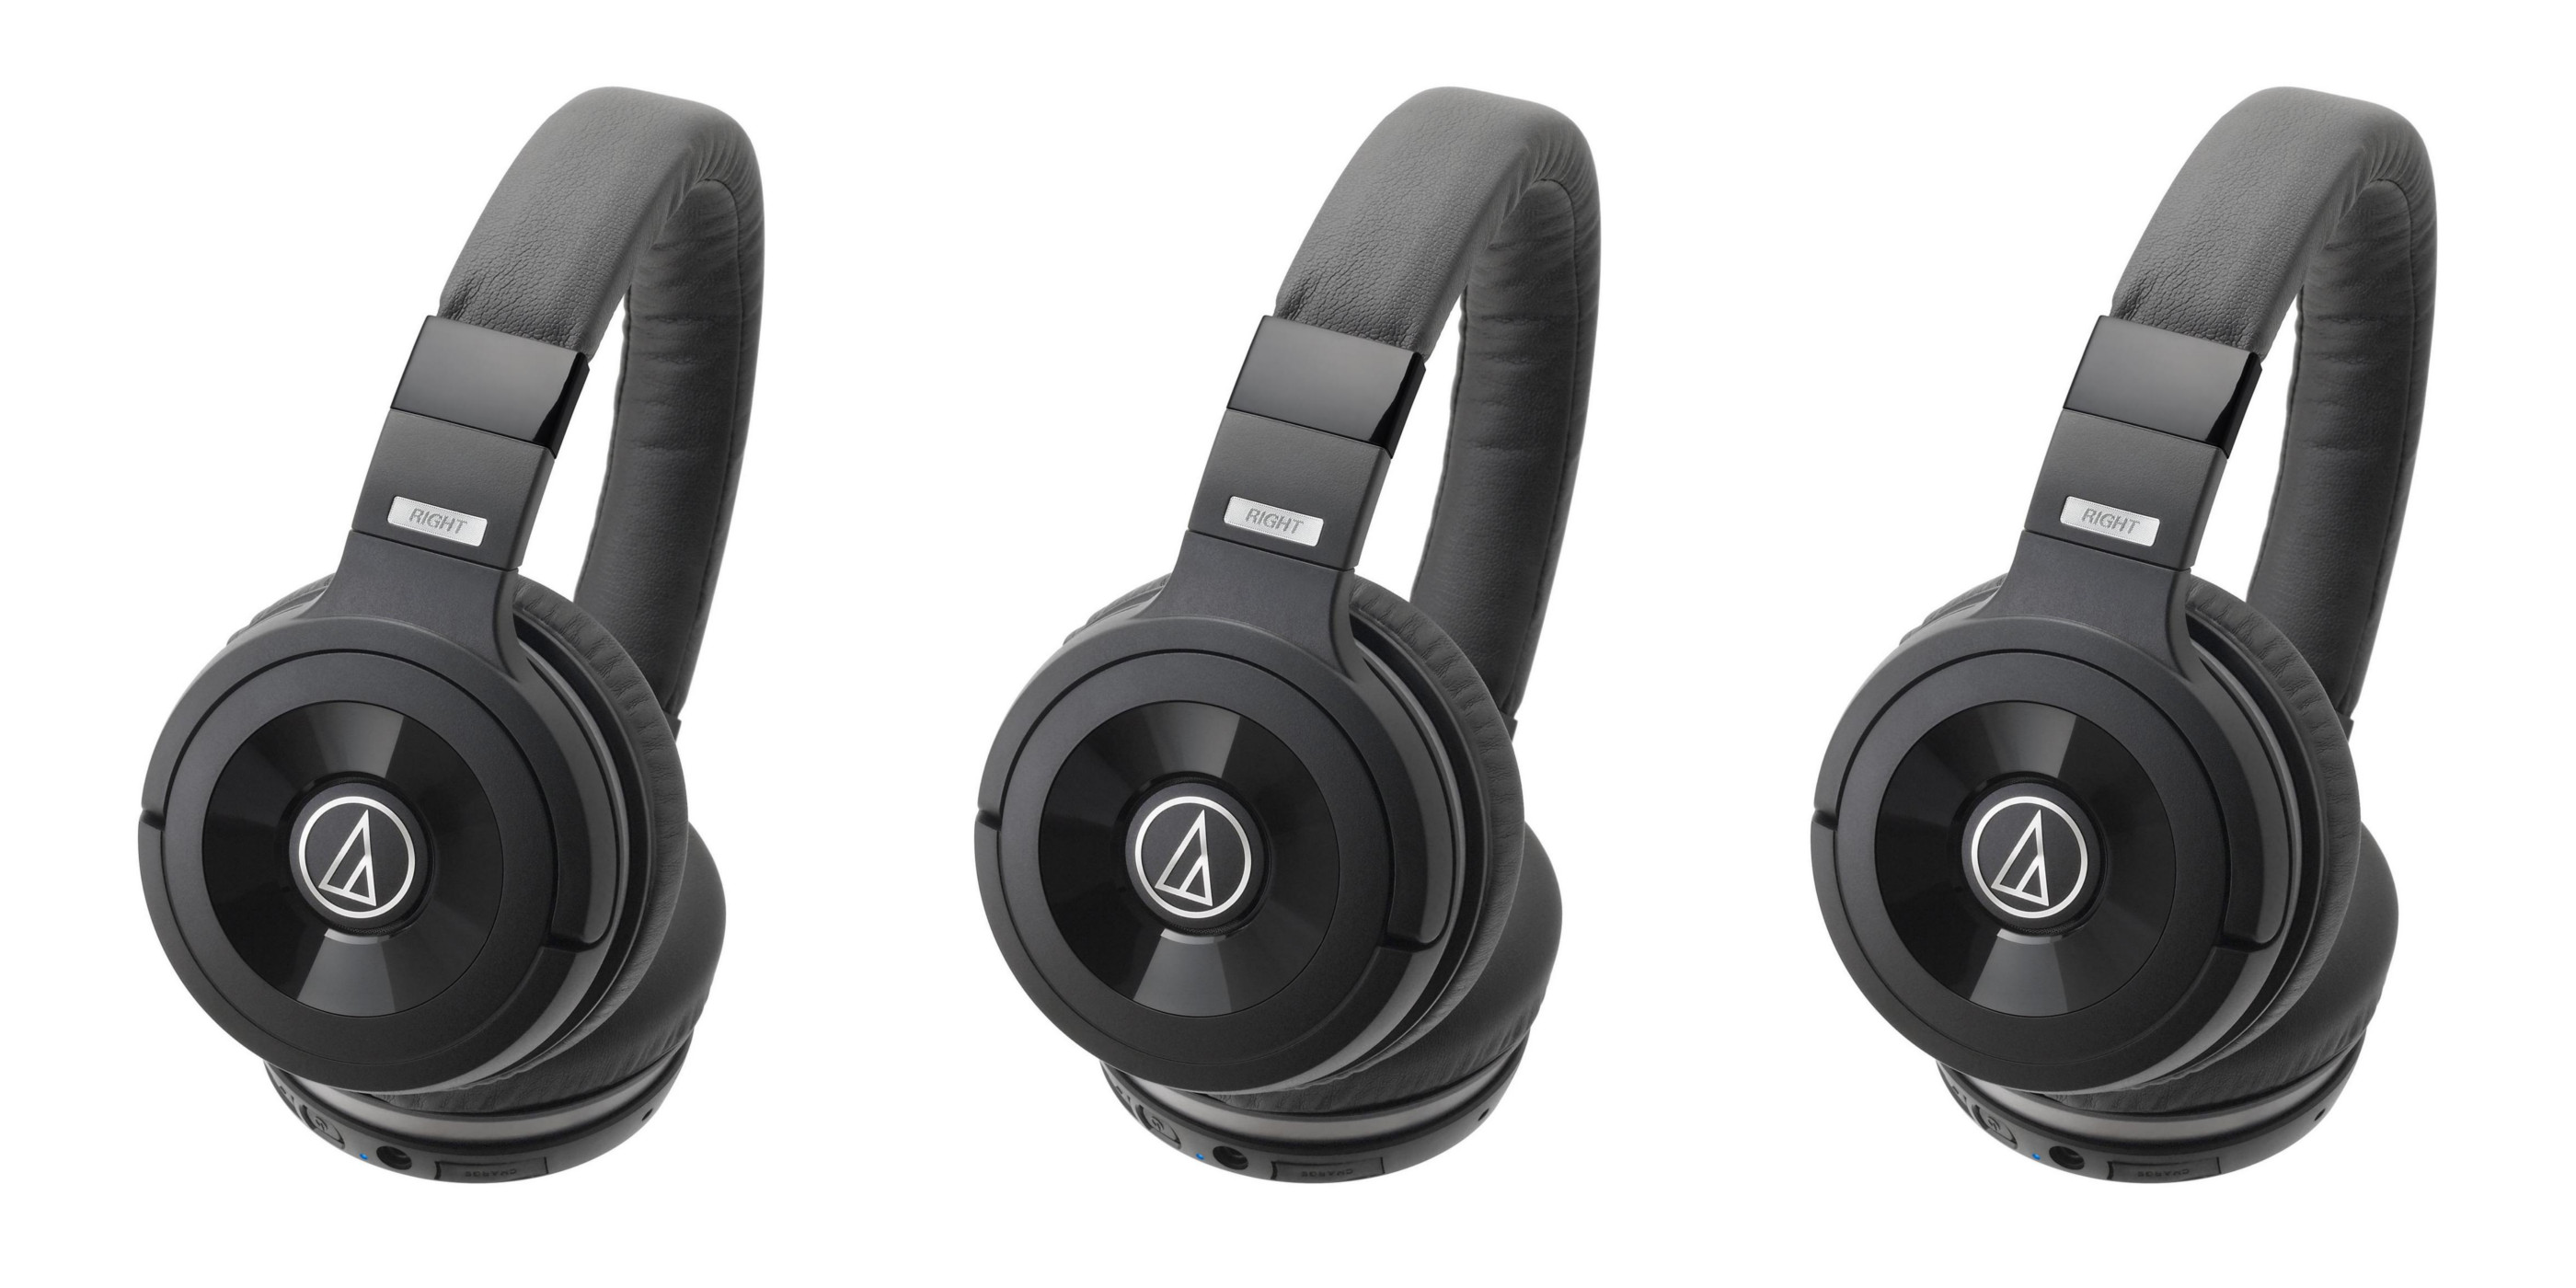 Get Audio-Technica WS99BT Bluetooth headphones for $99 shipped (Reg. $165)